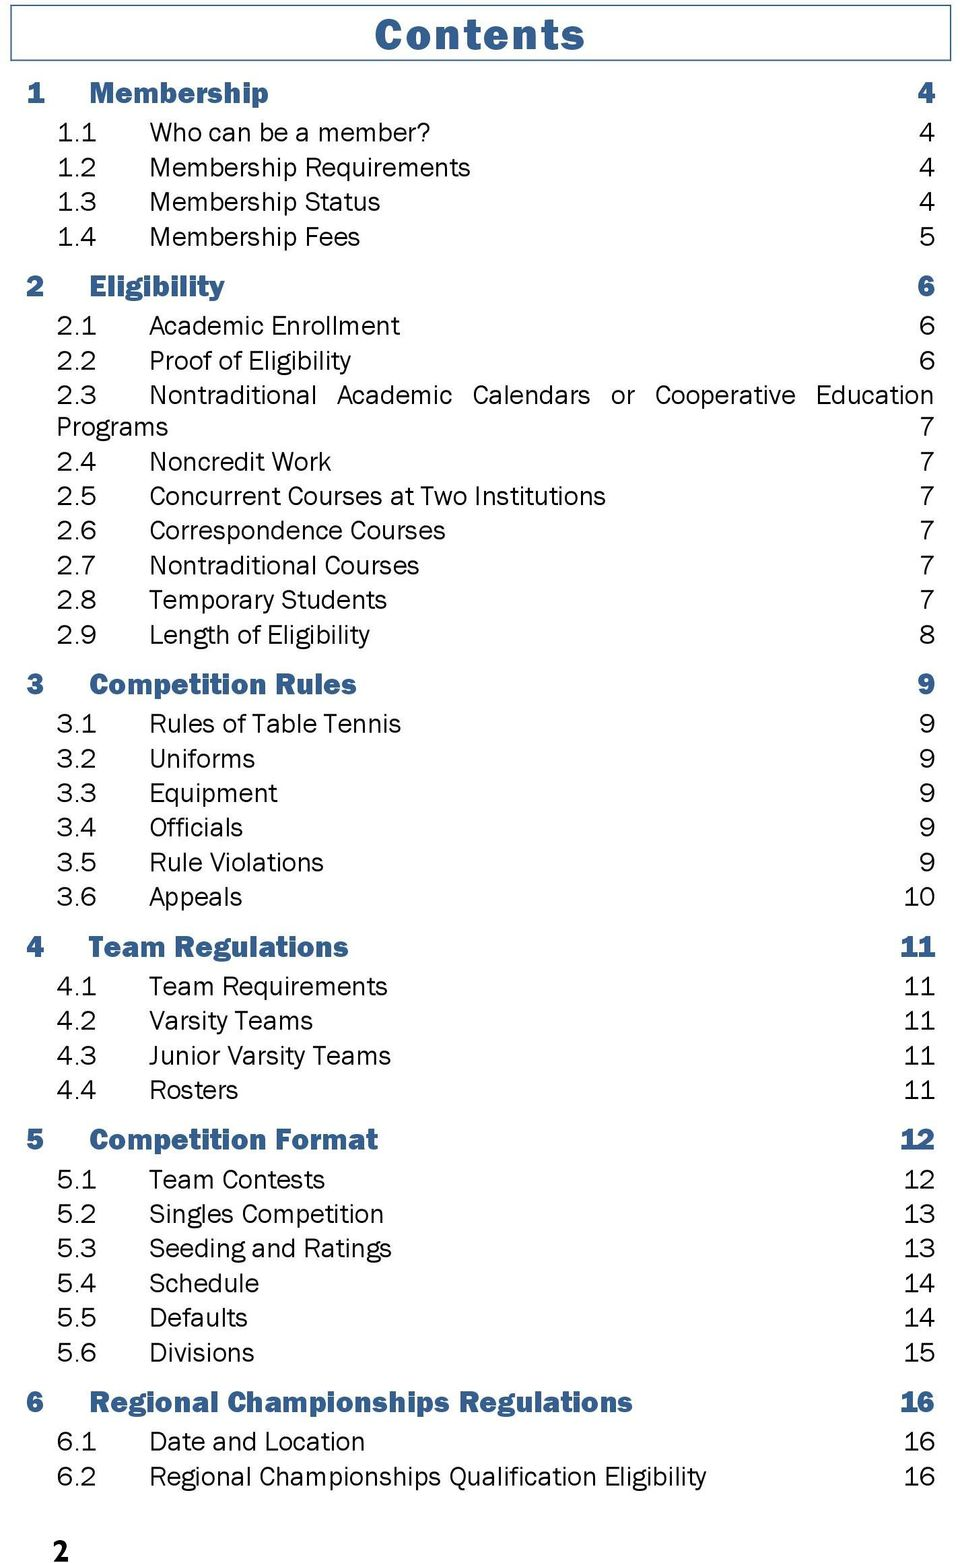 8 Temporary Students 7 2.9 Length of Eligibility 8 3 Competition Rules 9 3.1 Rules of Table Tennis 9 3.2 Uniforms 9 3.3 Equipment 9 3.4 Officials 9 3.5 Rule Violations 9 3.